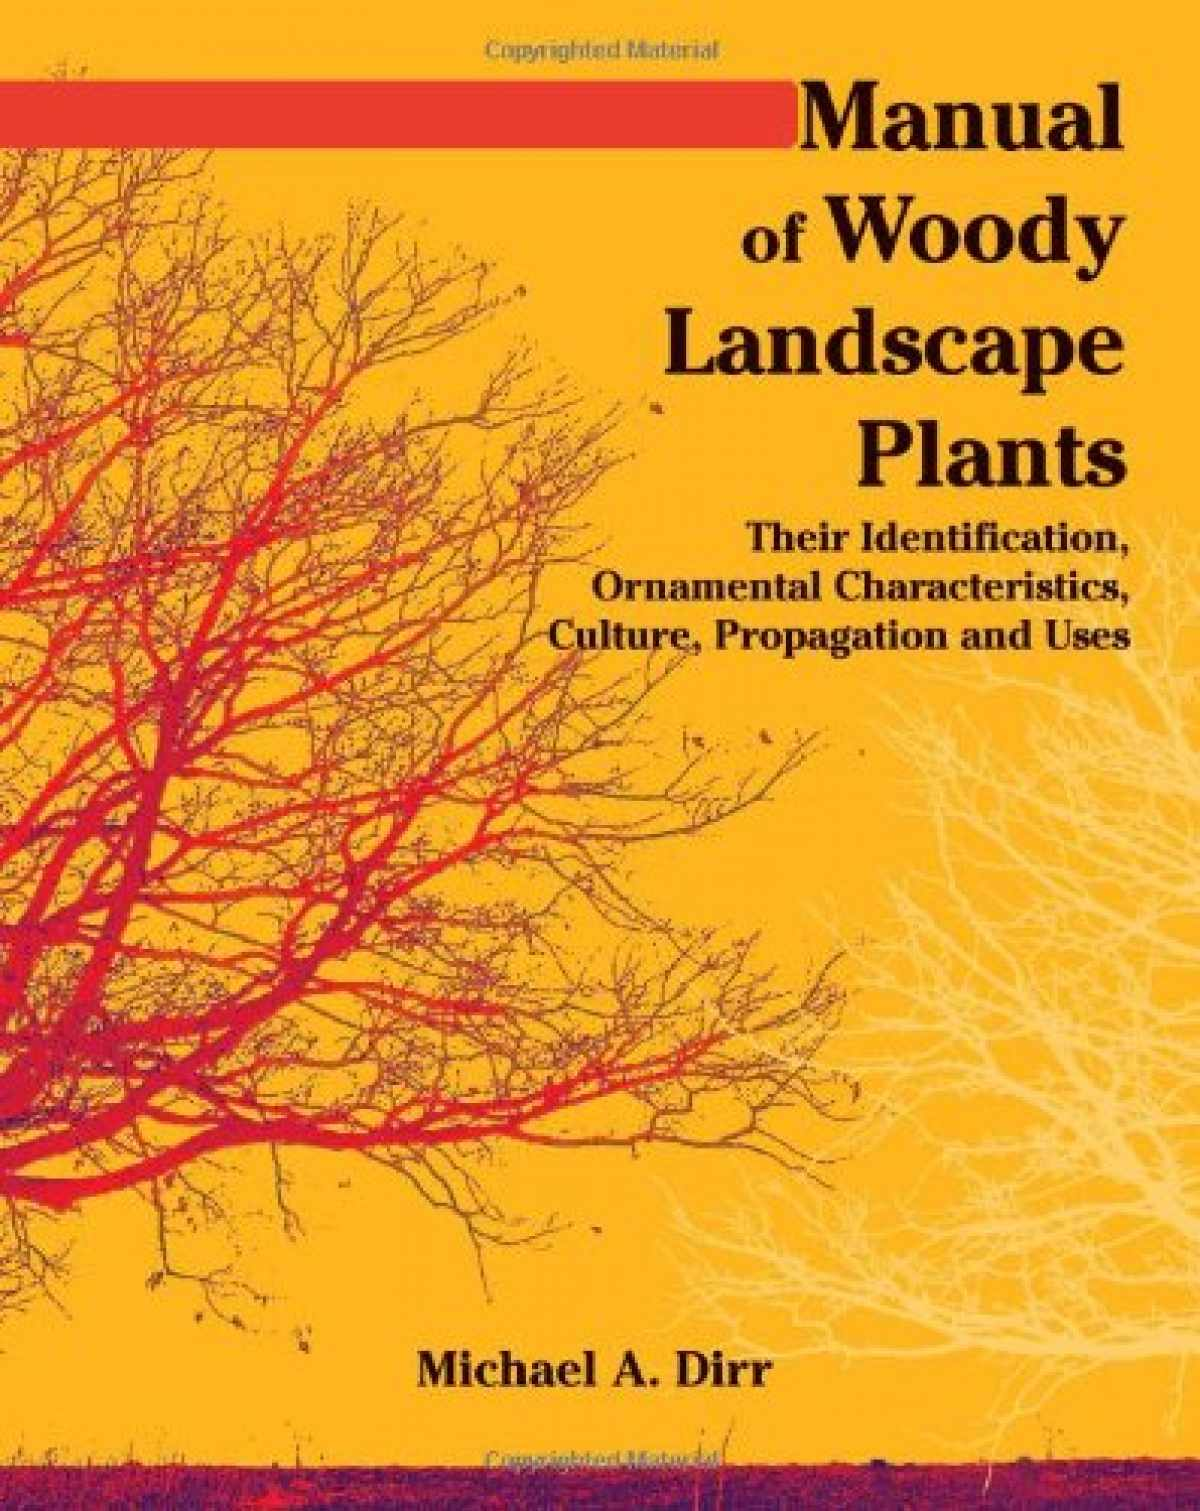 Manual of Woody Landscape Plants: Their Identification, Ornamental Characteristics, Culture, Propagation and Uses Cover